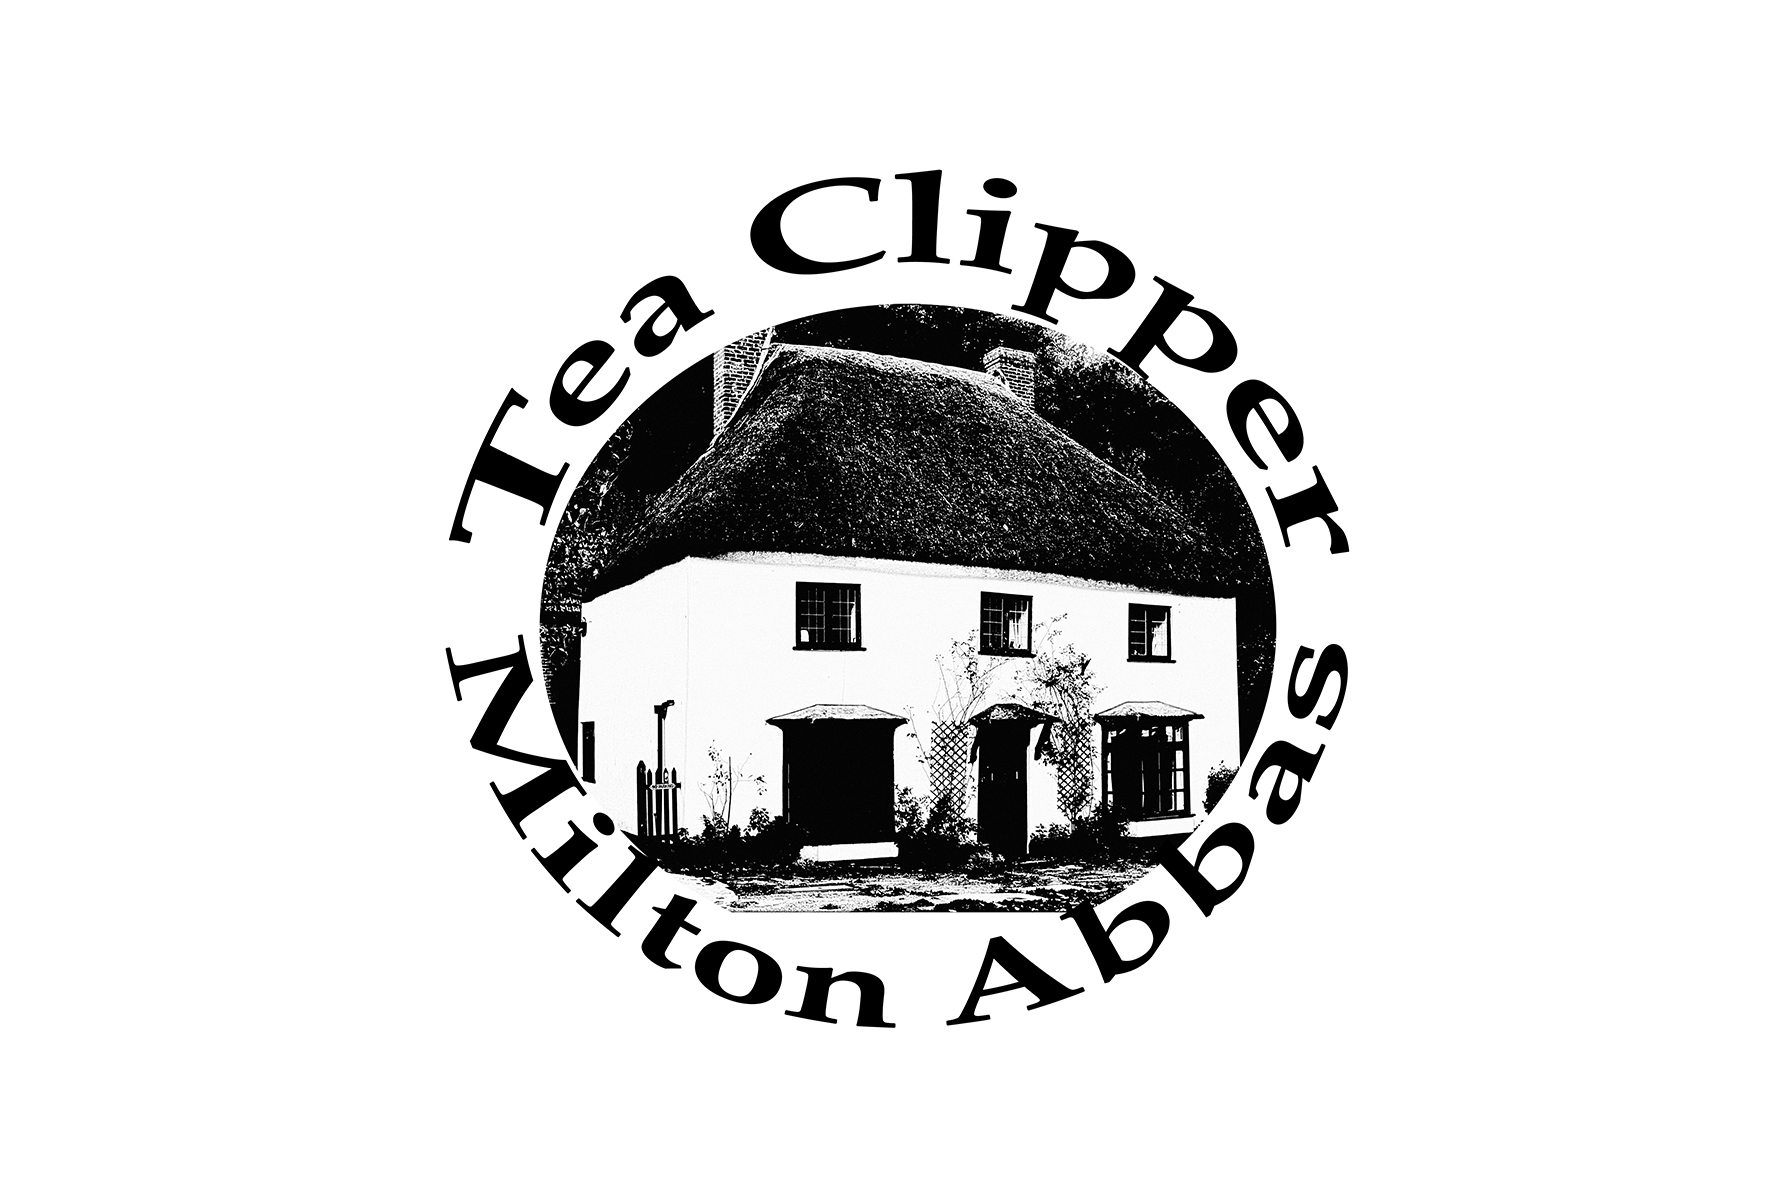 The Tea Clipper